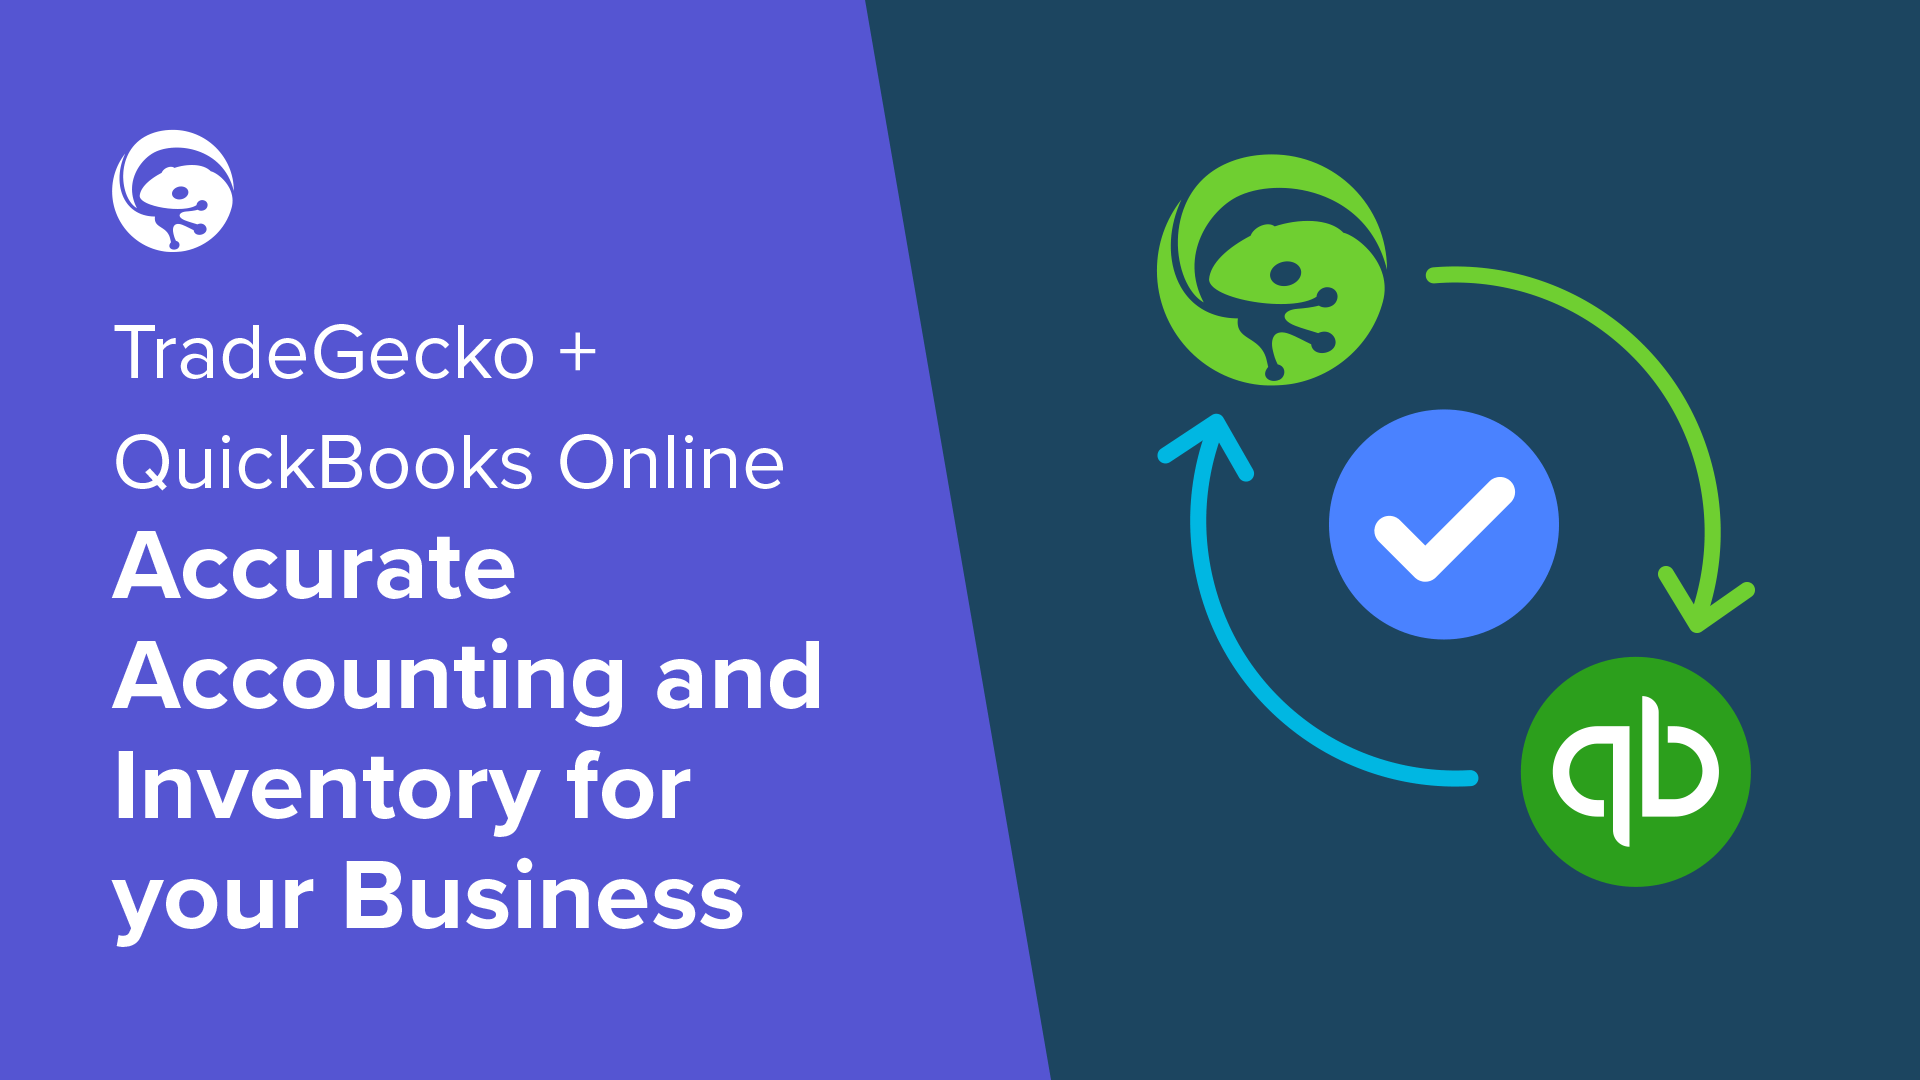 QuickBooks Online Inventory Management